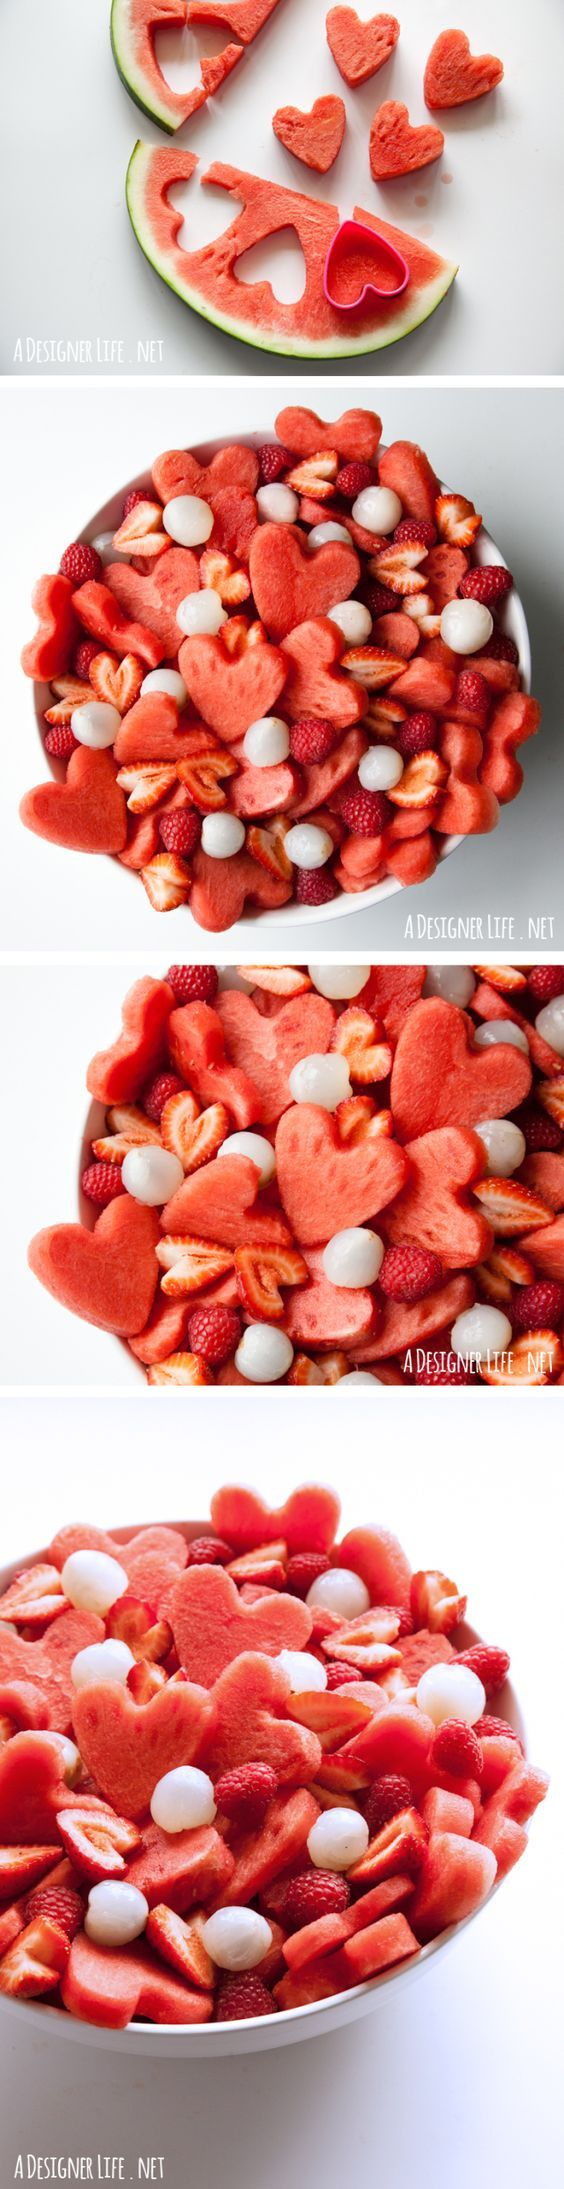 Having a party for #ValentinesDay? Not without this adorable (and delicious) watermelon bowl of #hearts!